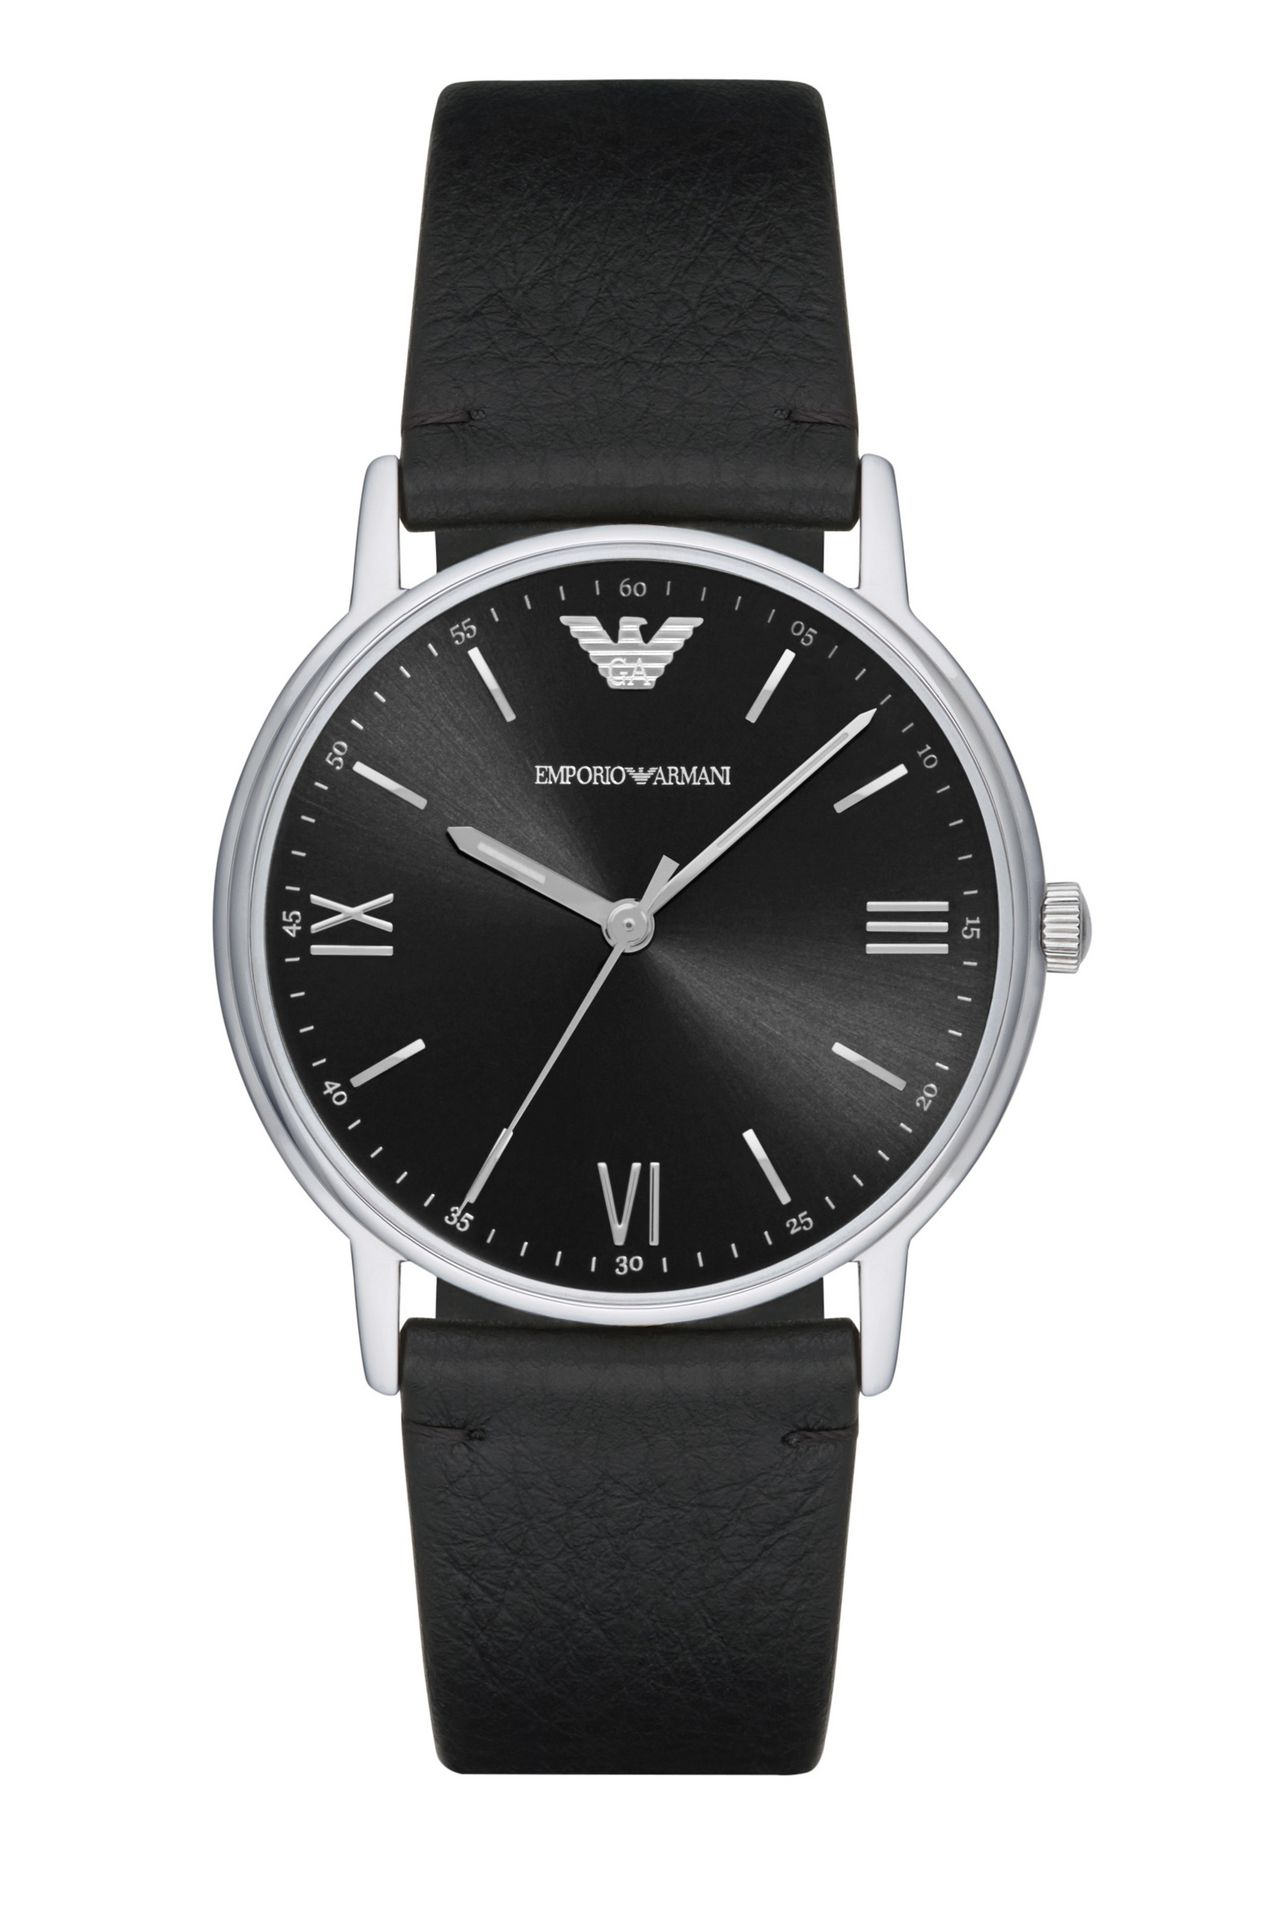 emporio armani men s watches swiss smartwatches quartz watch